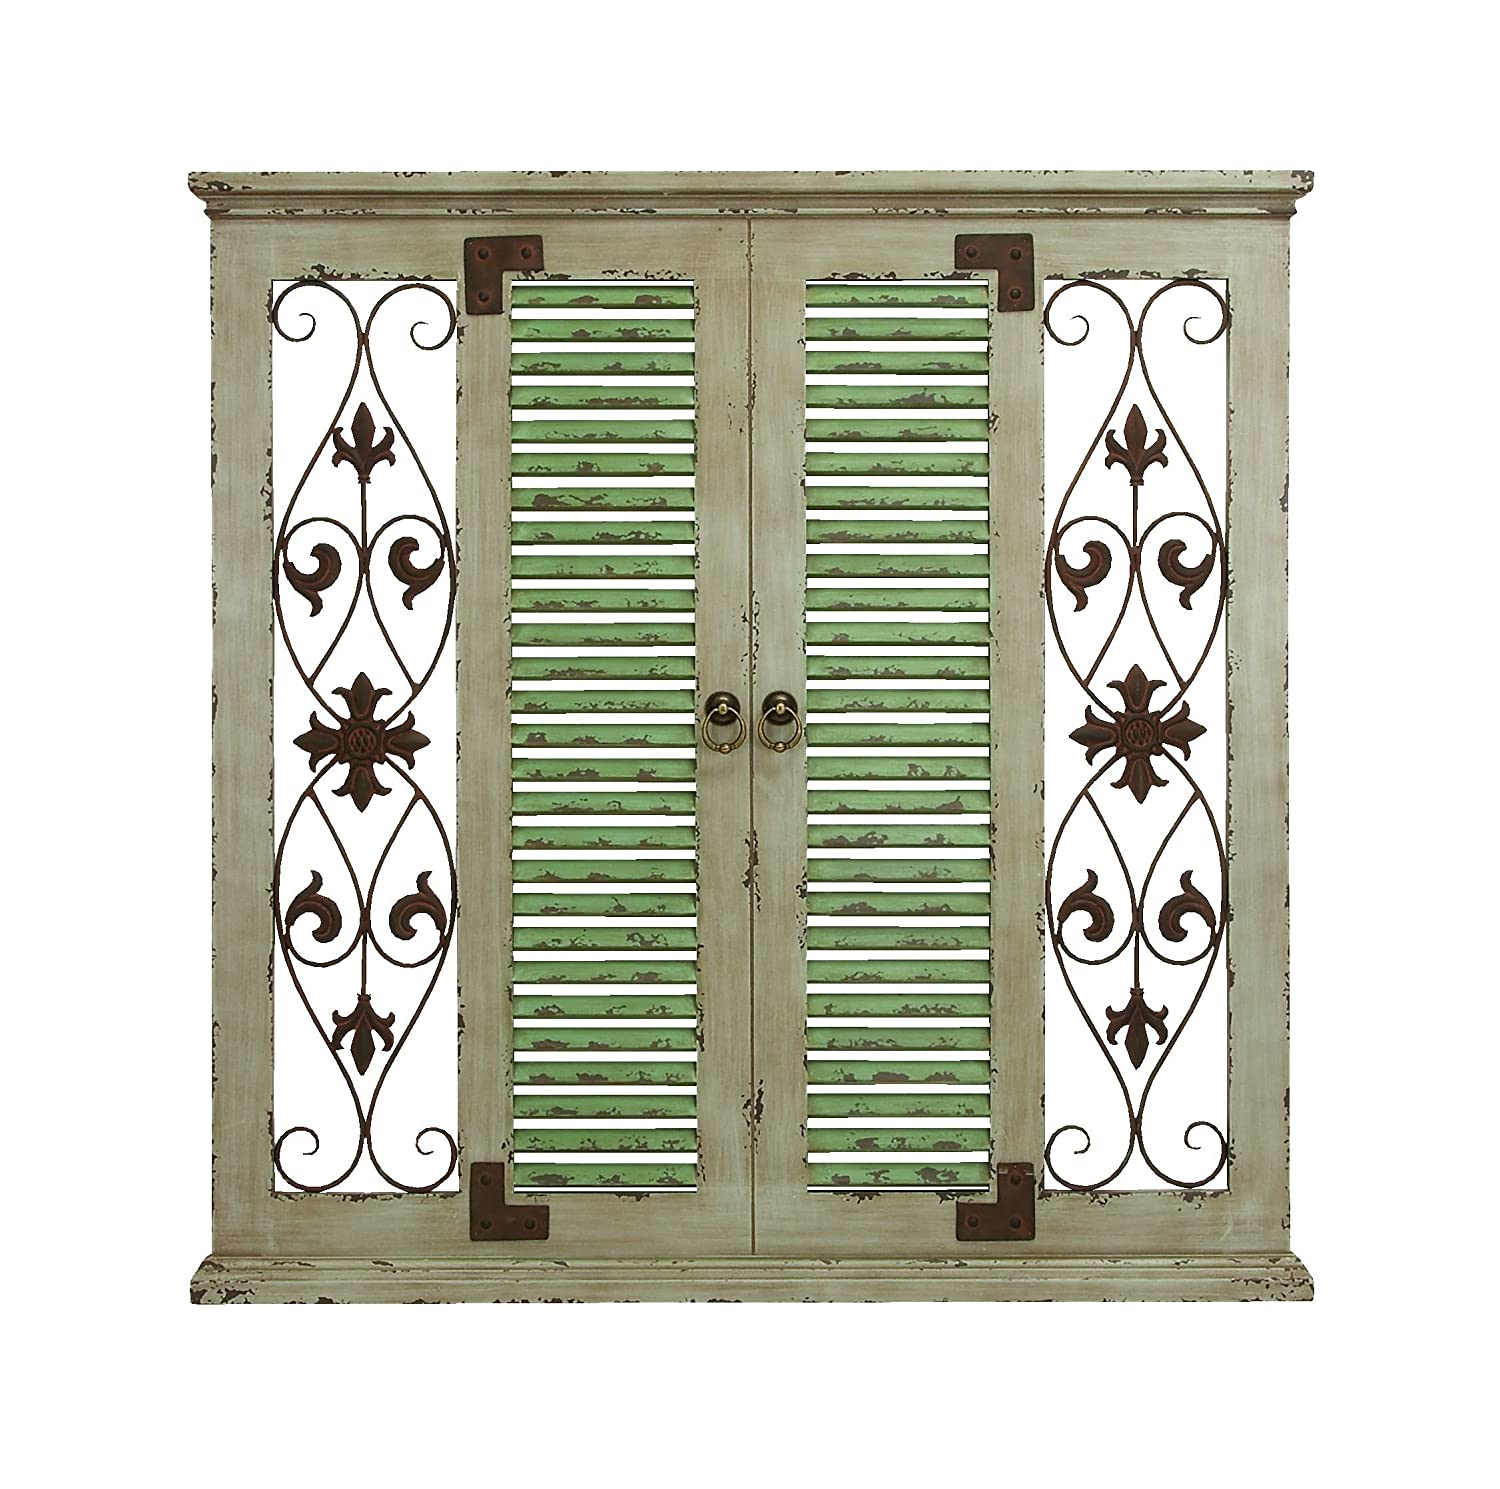 """Deco 79 Rustic Square Louvered Door-Inspired Wooden Wall Panel, 40""""H x 40"""" L, Distressed White Finish"""